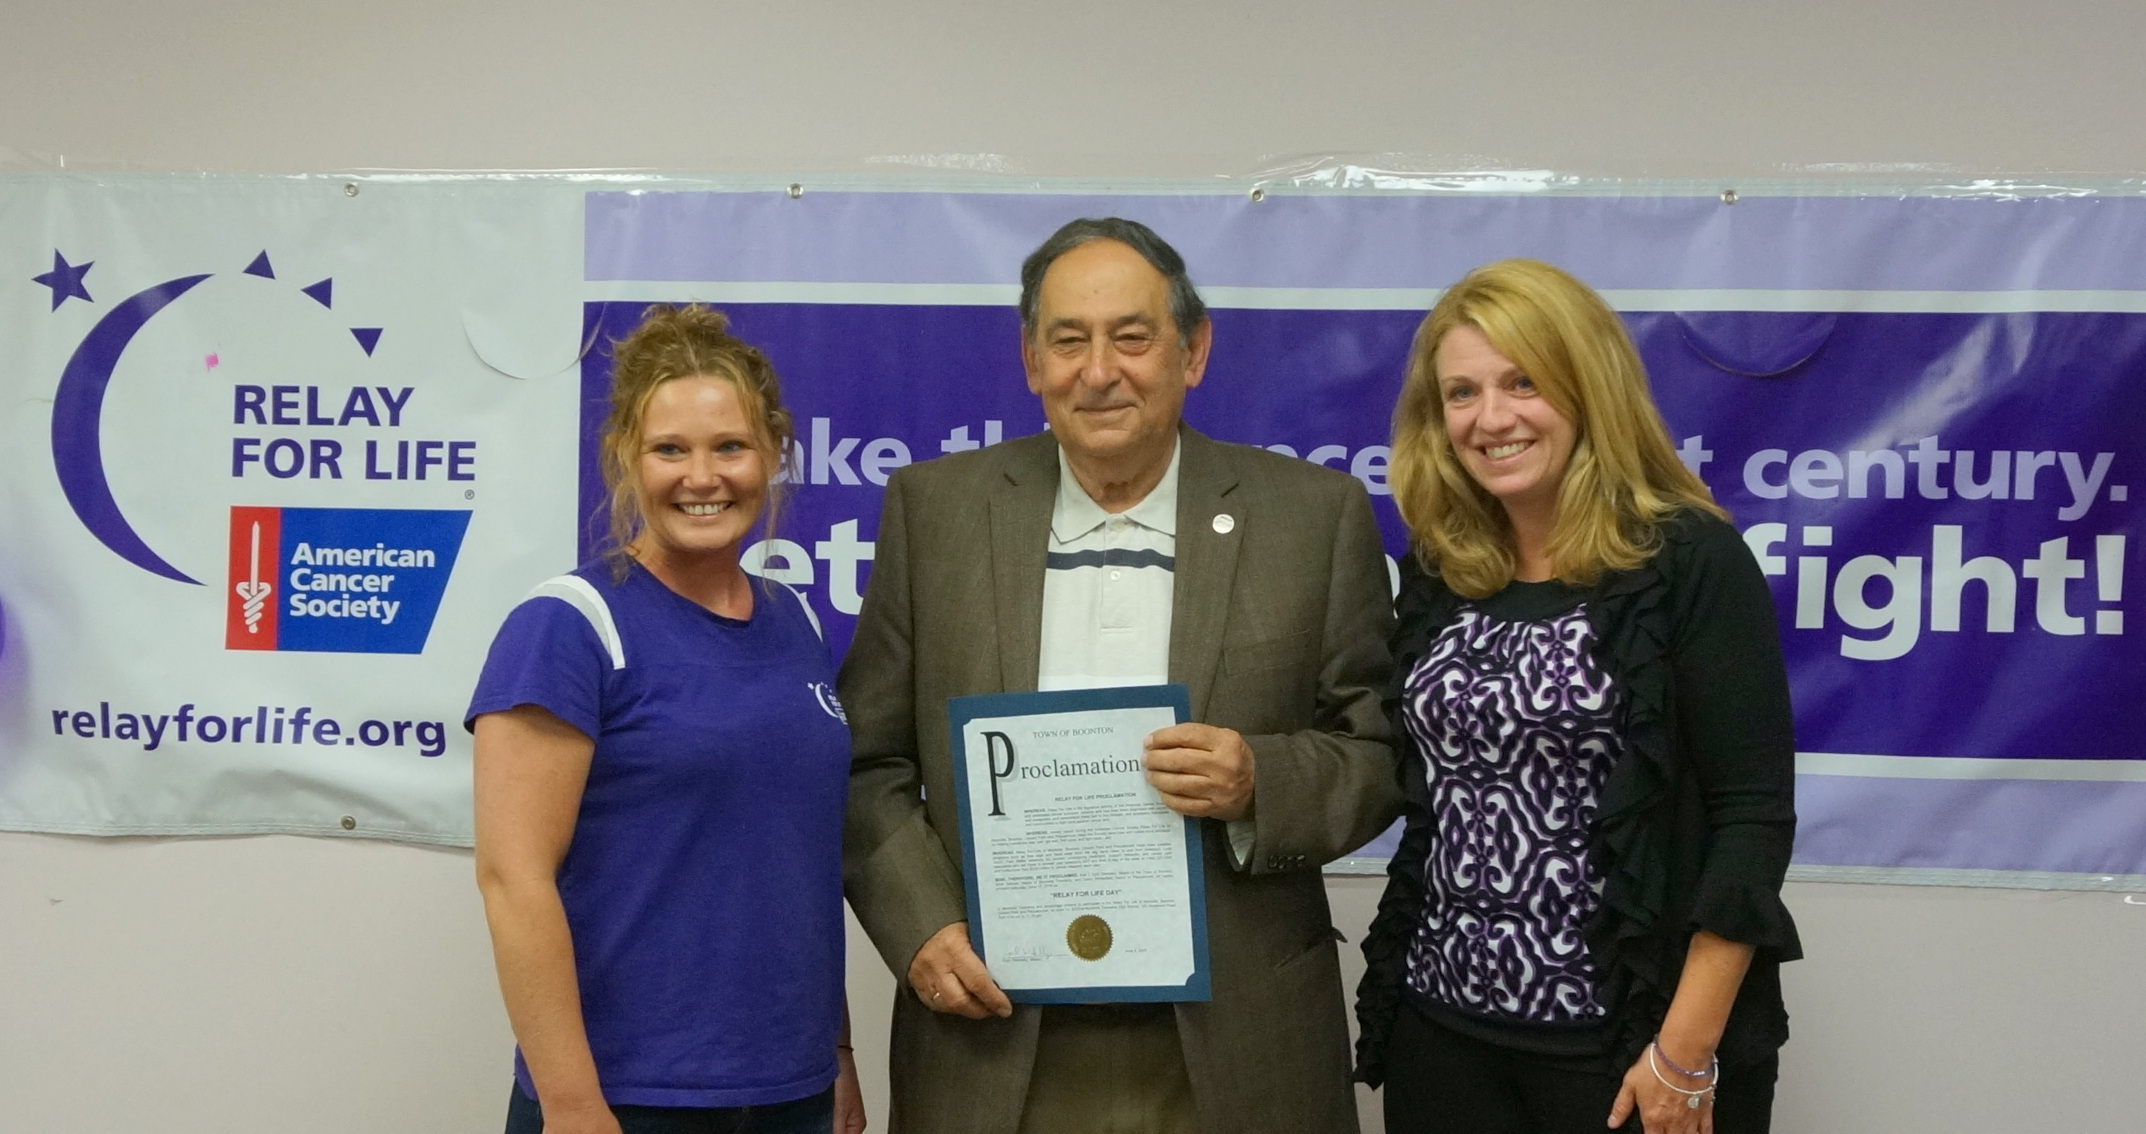 022cf1824aad843c8e11_BEST_Relay_for_Life_Proclamation_013.JPG